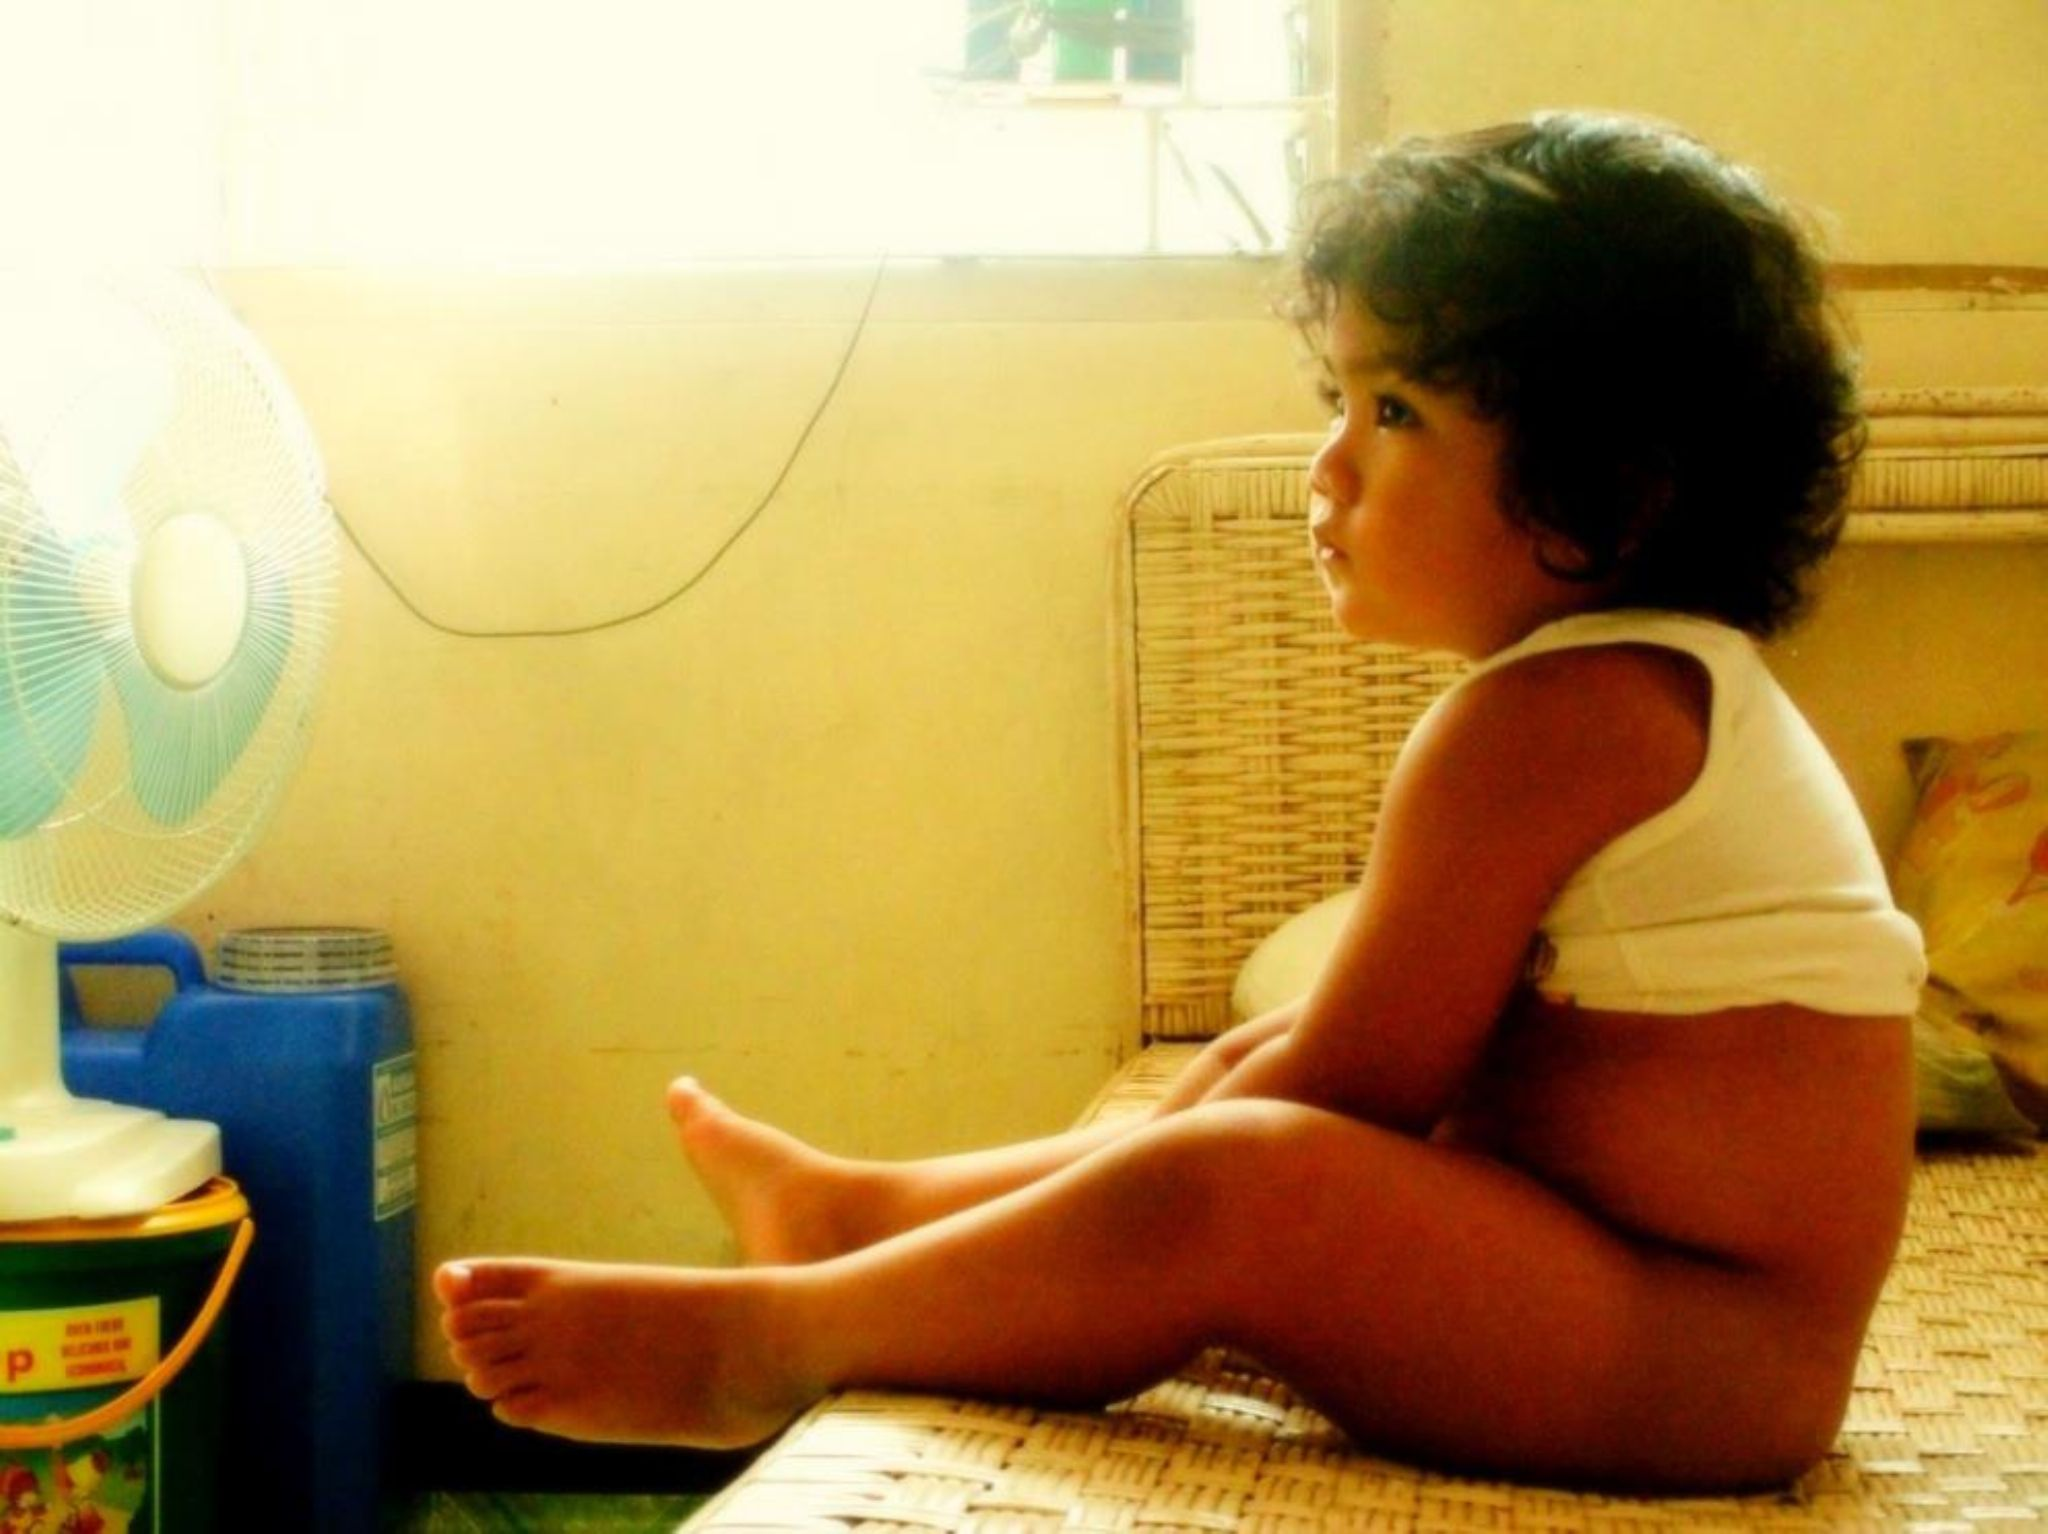 My son watching TV by ChristianBuenaobra